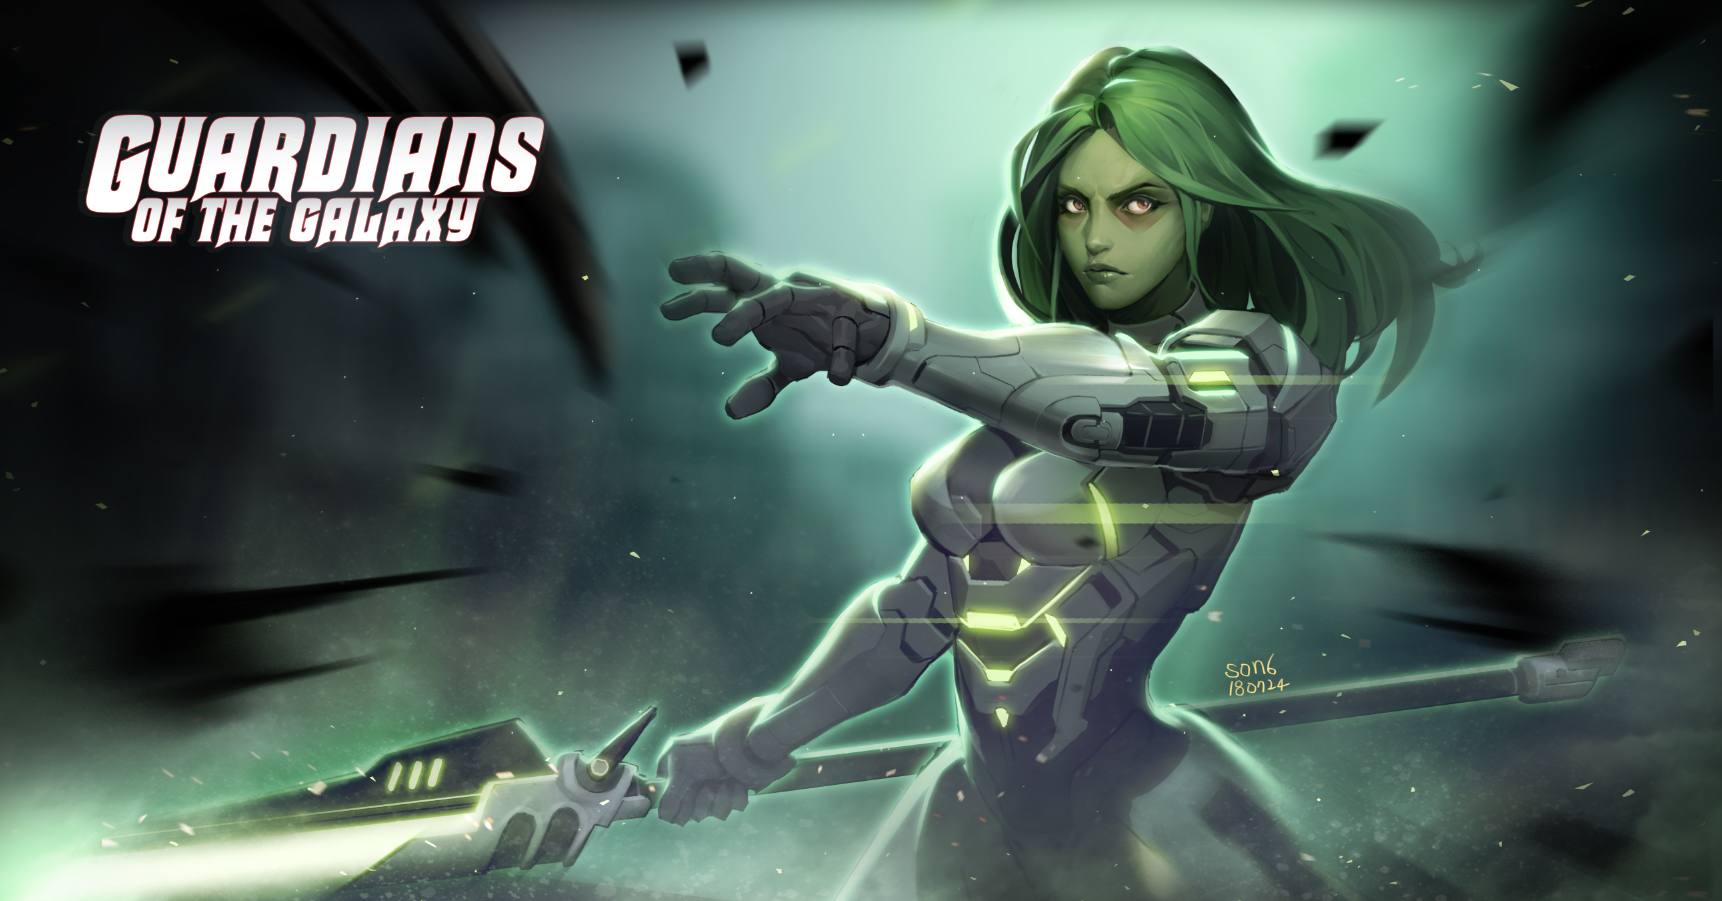 guardians of the galaxy gamora fanart